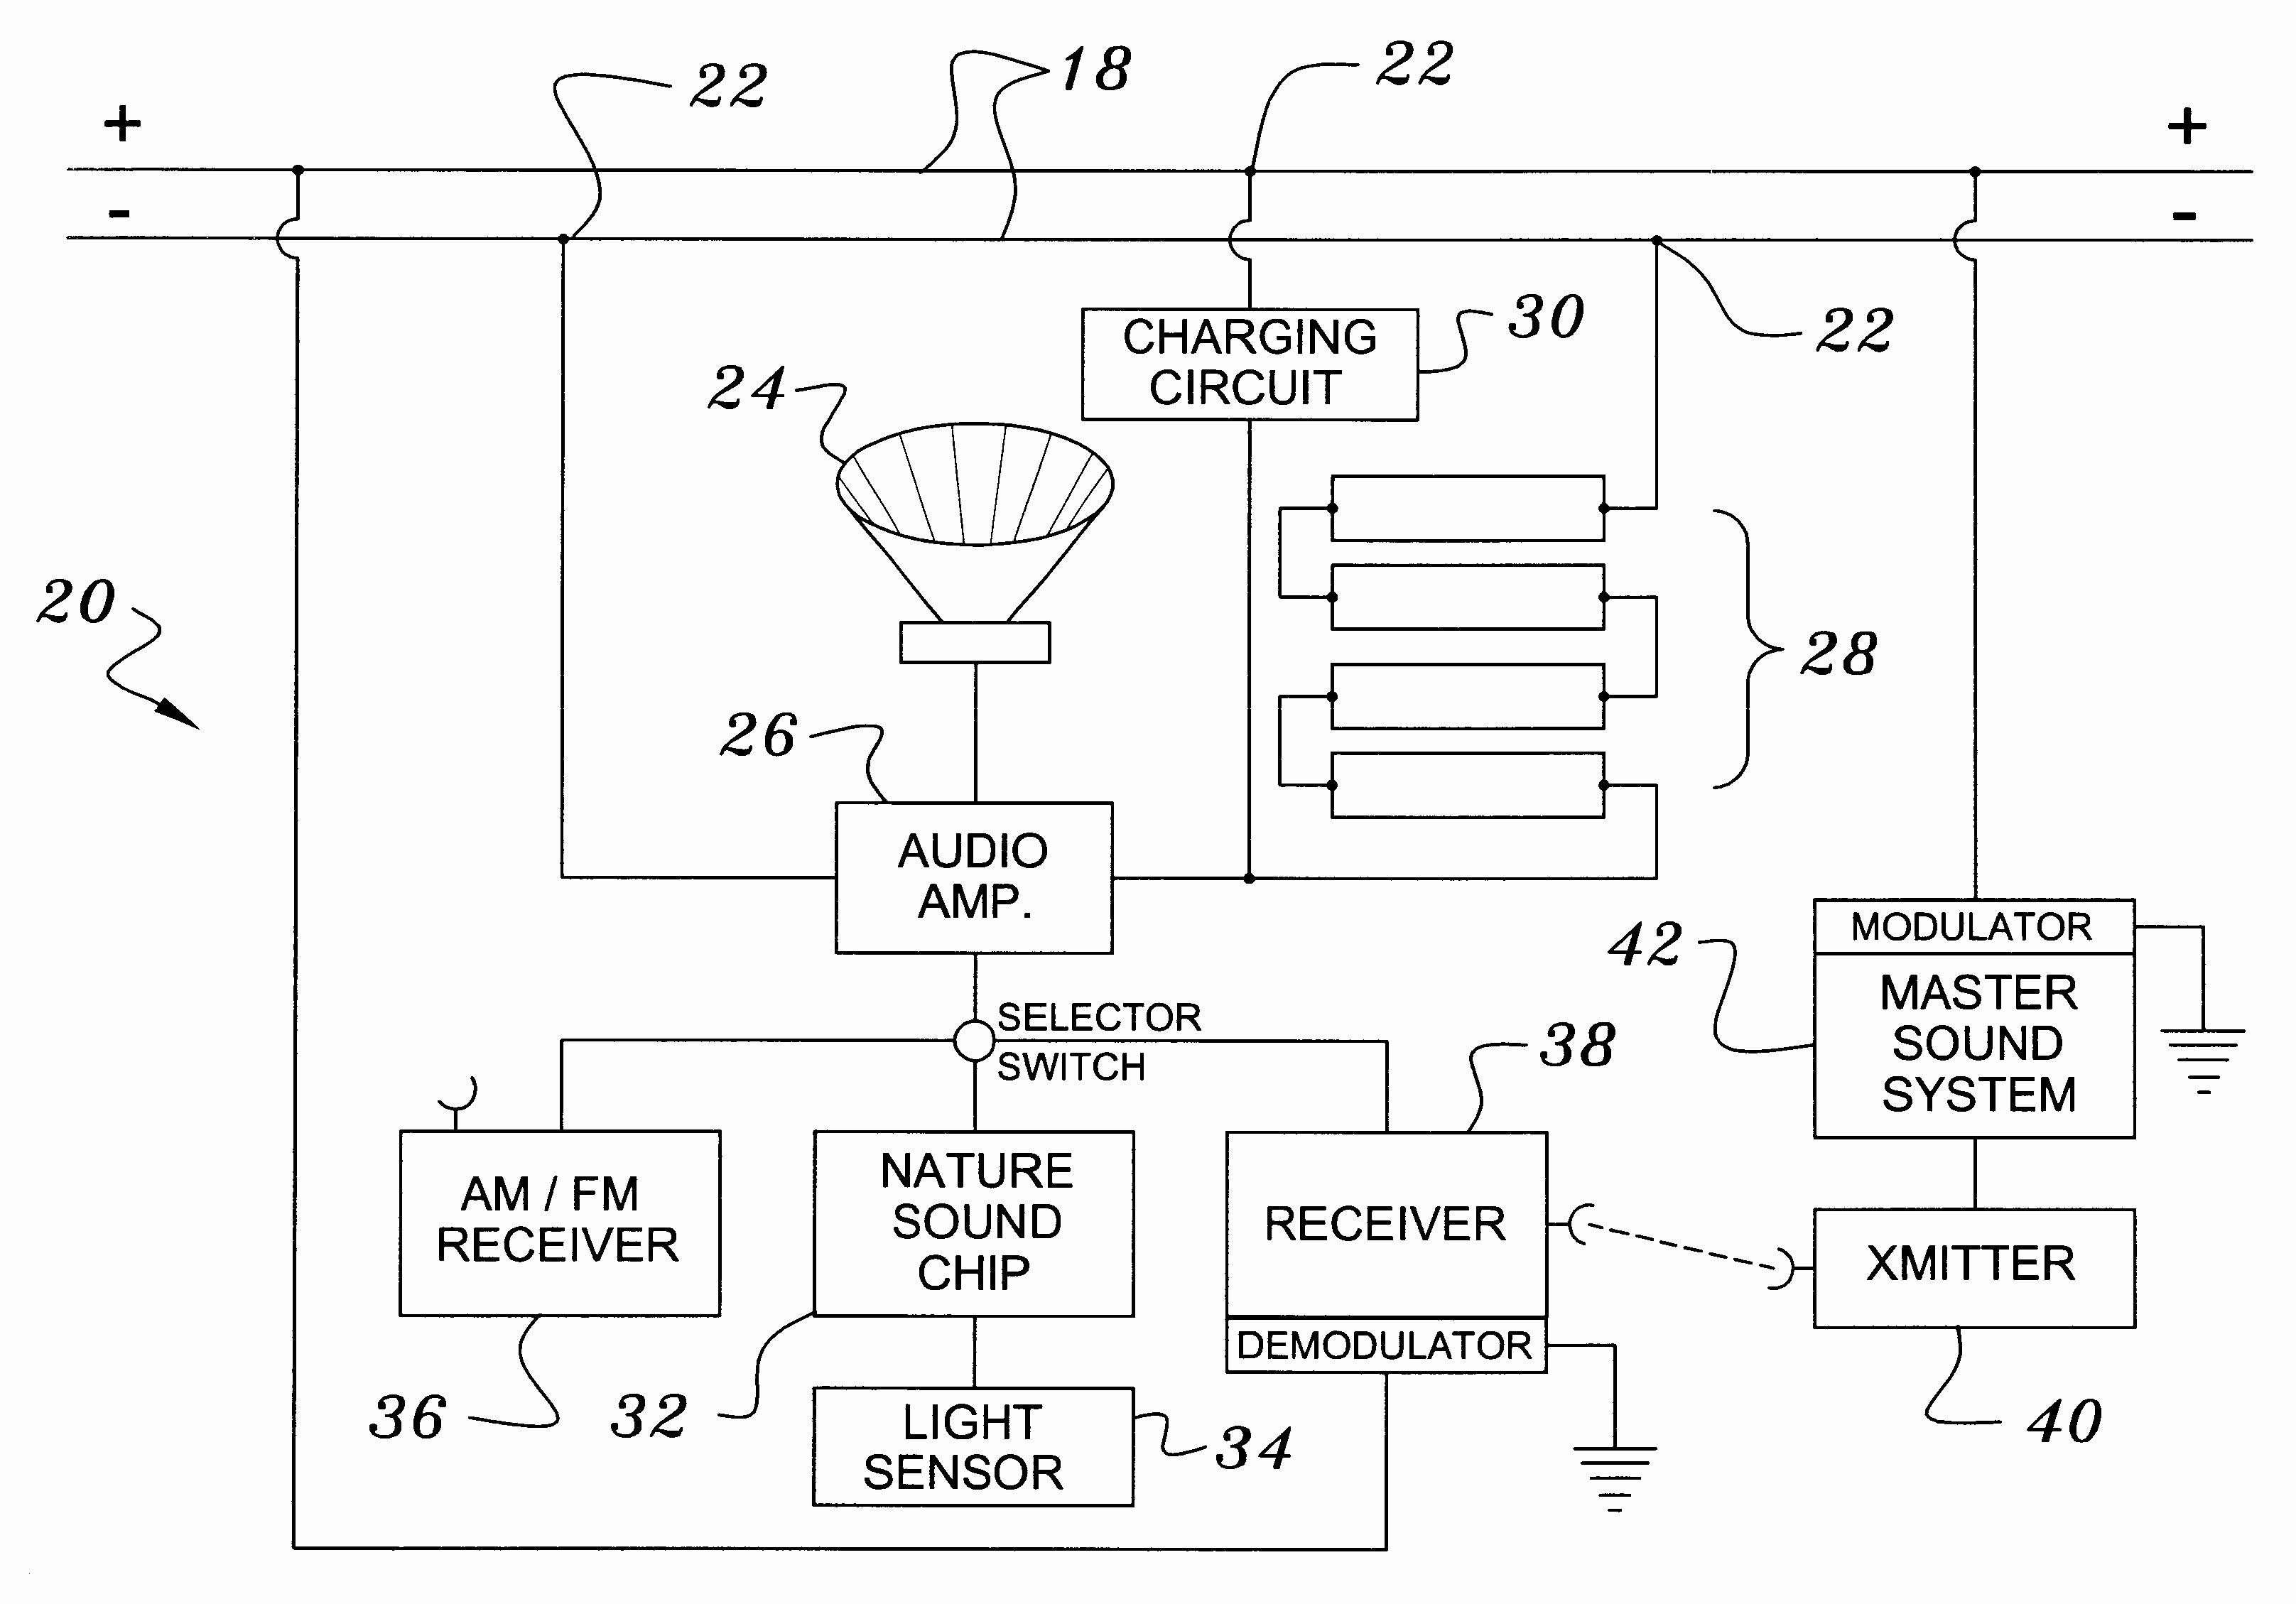 Diagram For Wiring Low Voltage Path Lights - Wiring Diagrams Click - Low Voltage Landscape Lighting Wiring Diagram